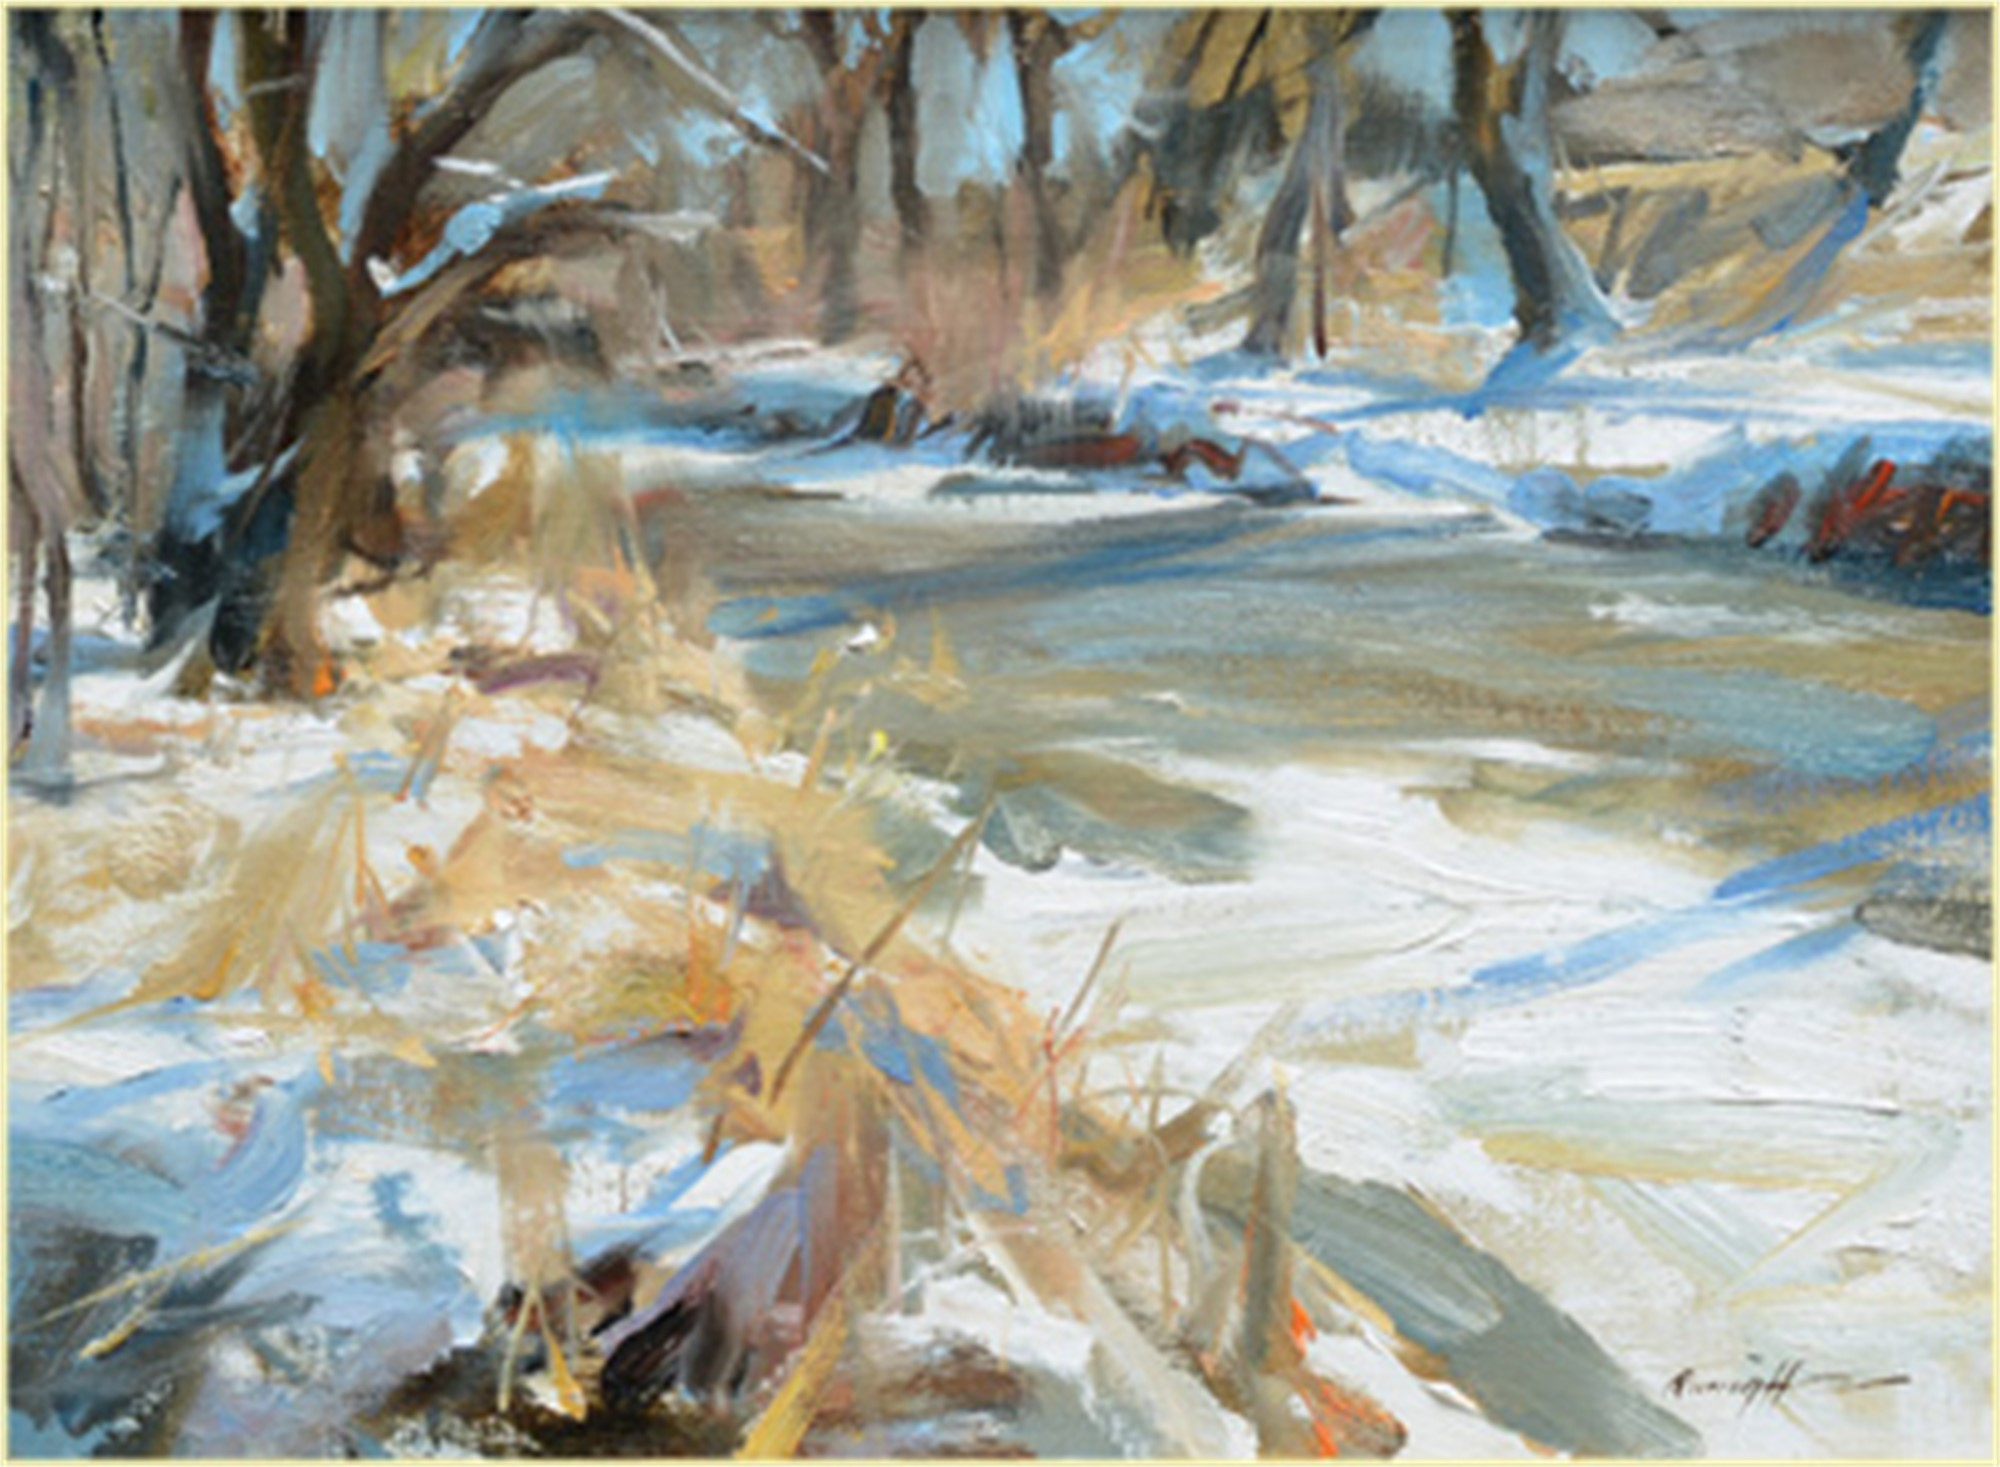 Cherry Creek in January by Quang Ho